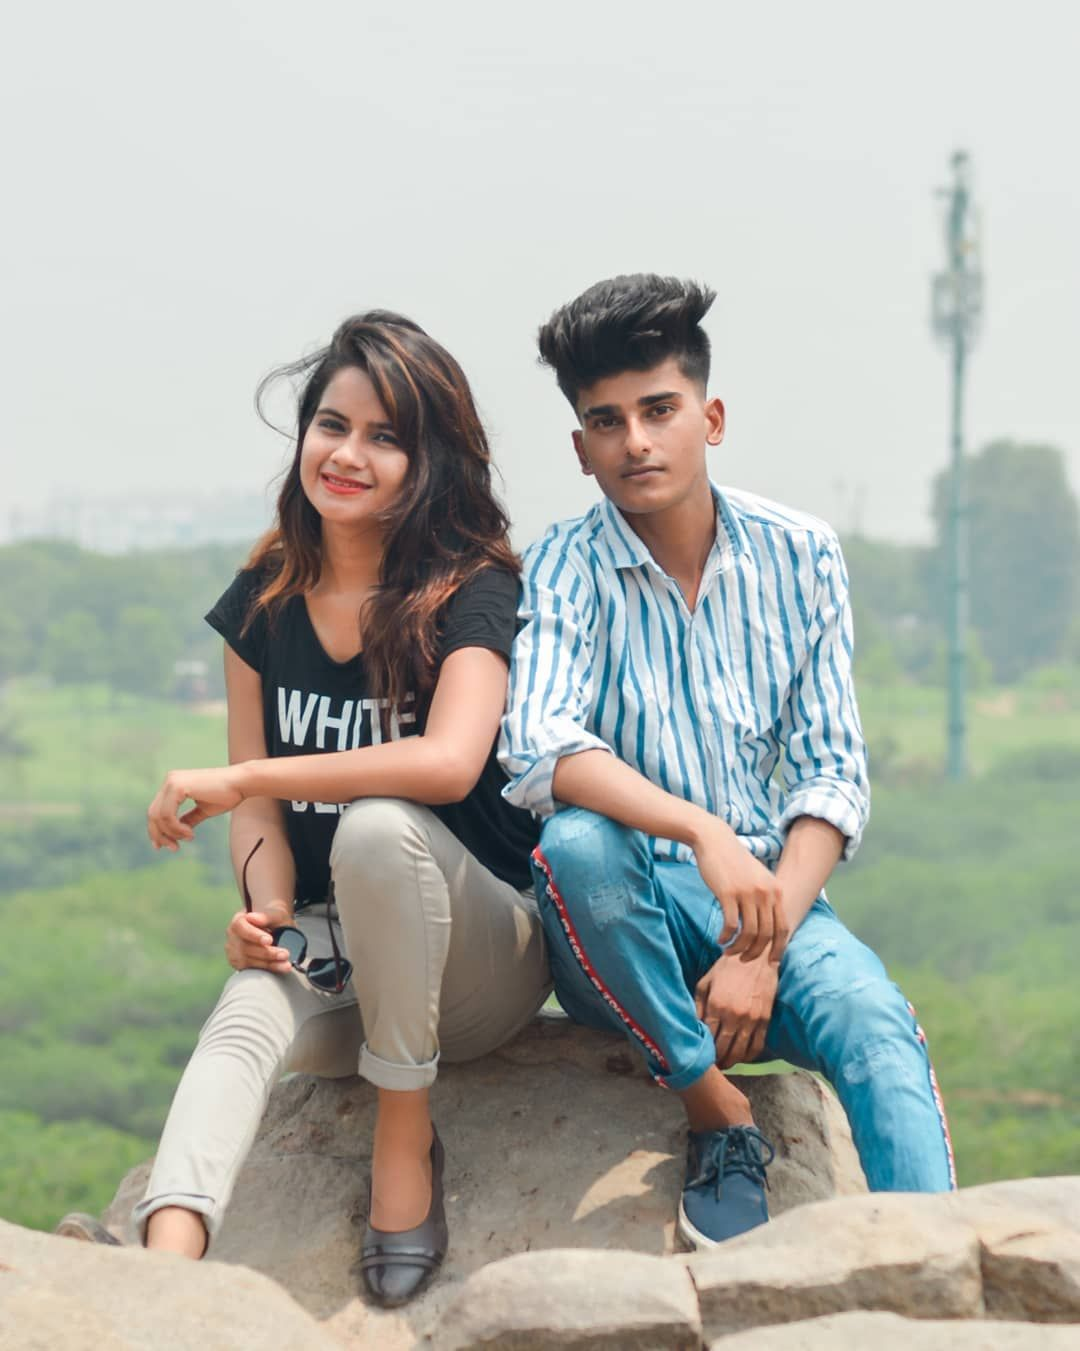 With Friend Friend Indian Boys And Girls 1 Love Fashionblogger Stylish Igers Model Likefor Boy Photography Poses Cute Boy Photo Fall Photoshoot